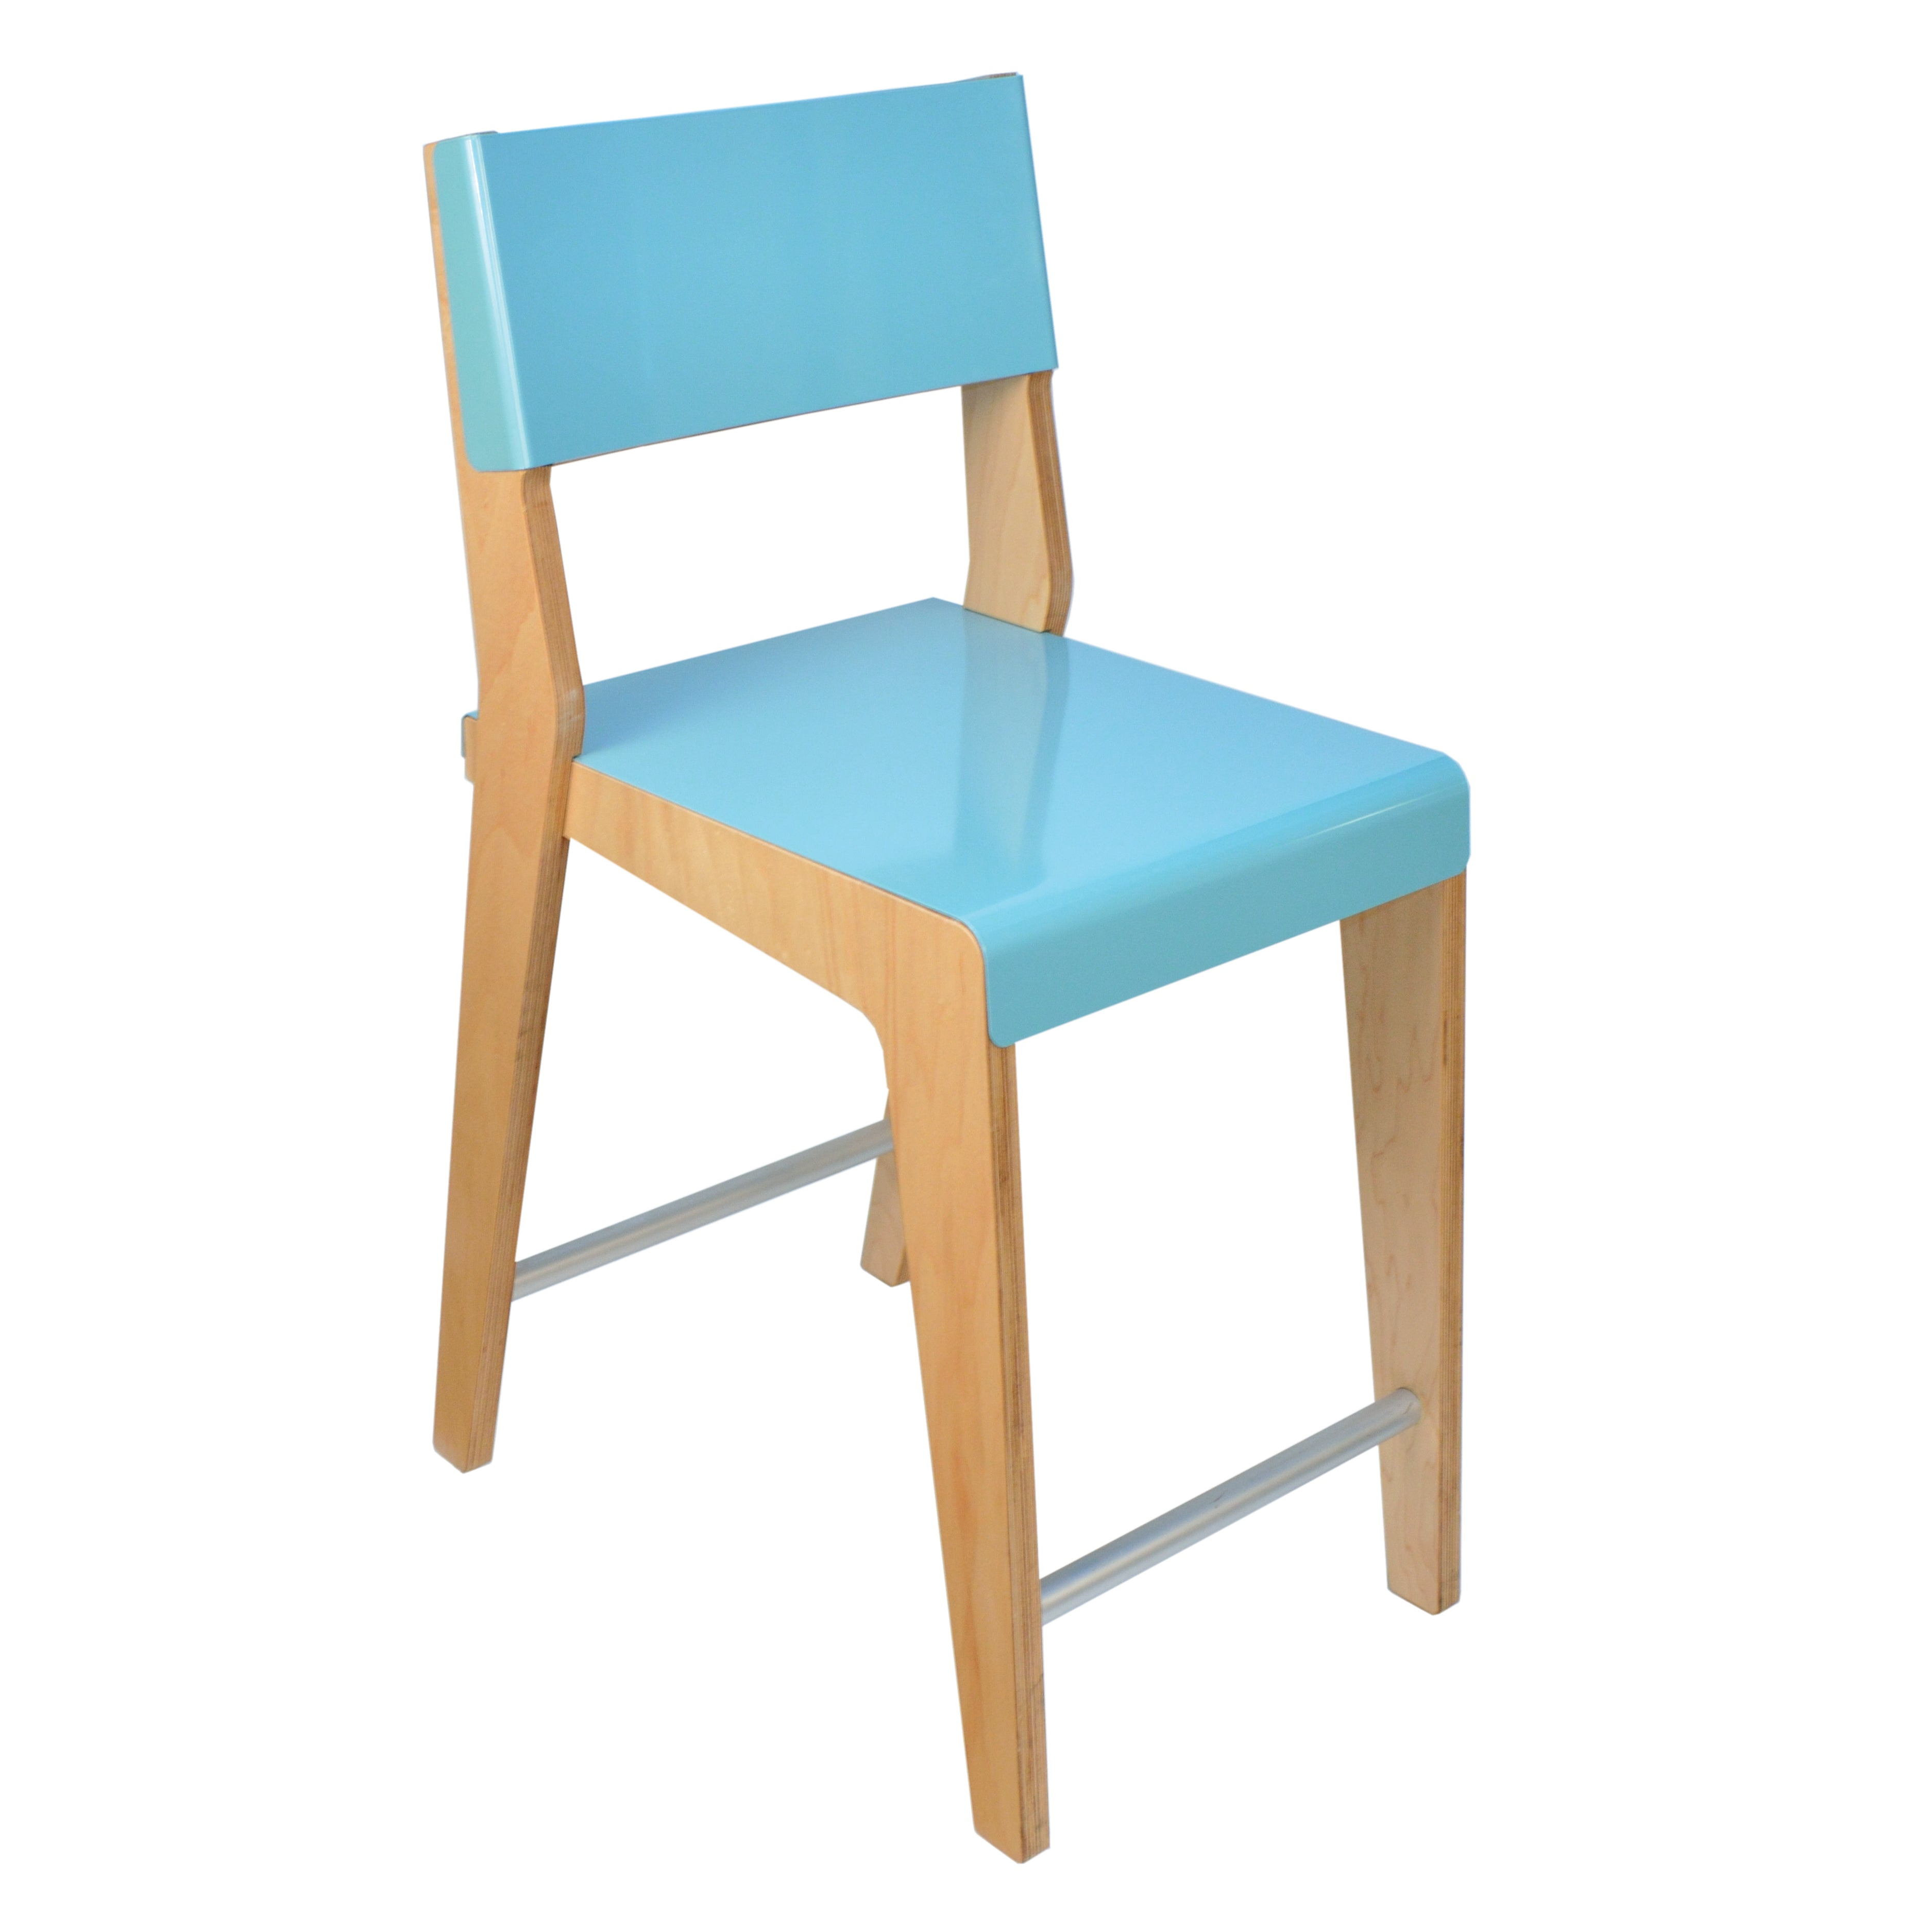 Lock Bar + Counter Stool: Counter + Light Blue + Maple